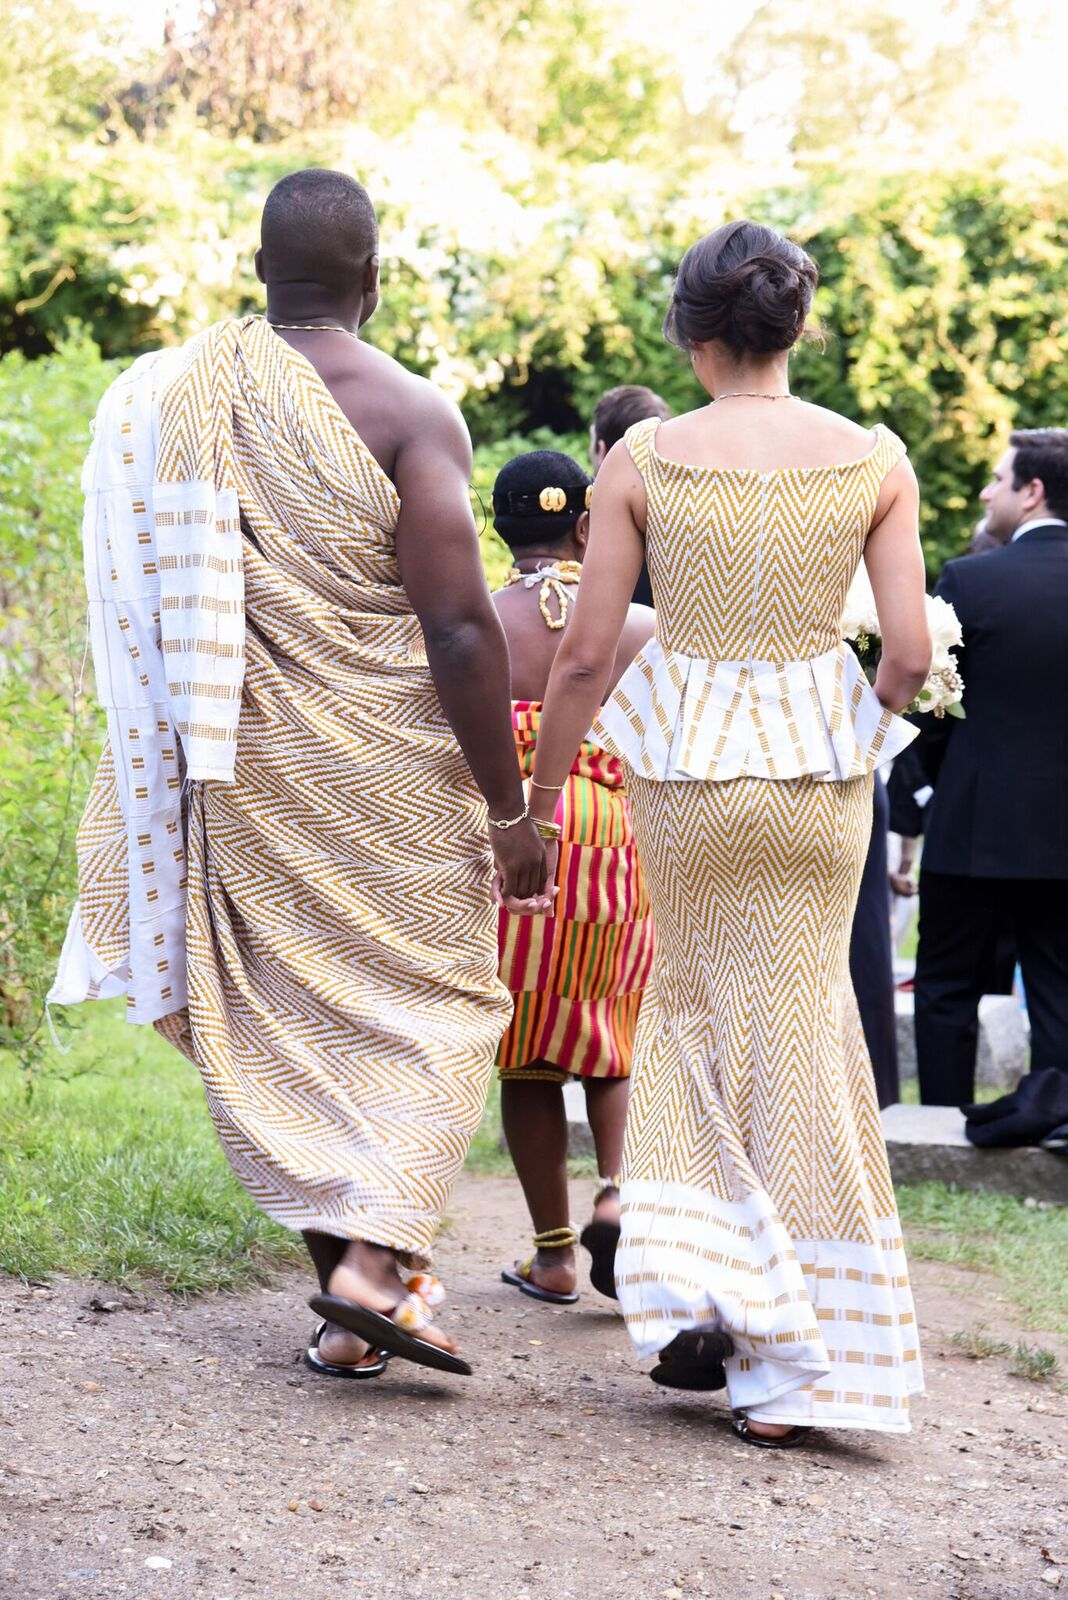 A Ghanaian ceremony in this real garden wedding we planned at Grounds for Sculpture in Princeton New Jersey. See all the details and chic photos from the wedding day in this blog!